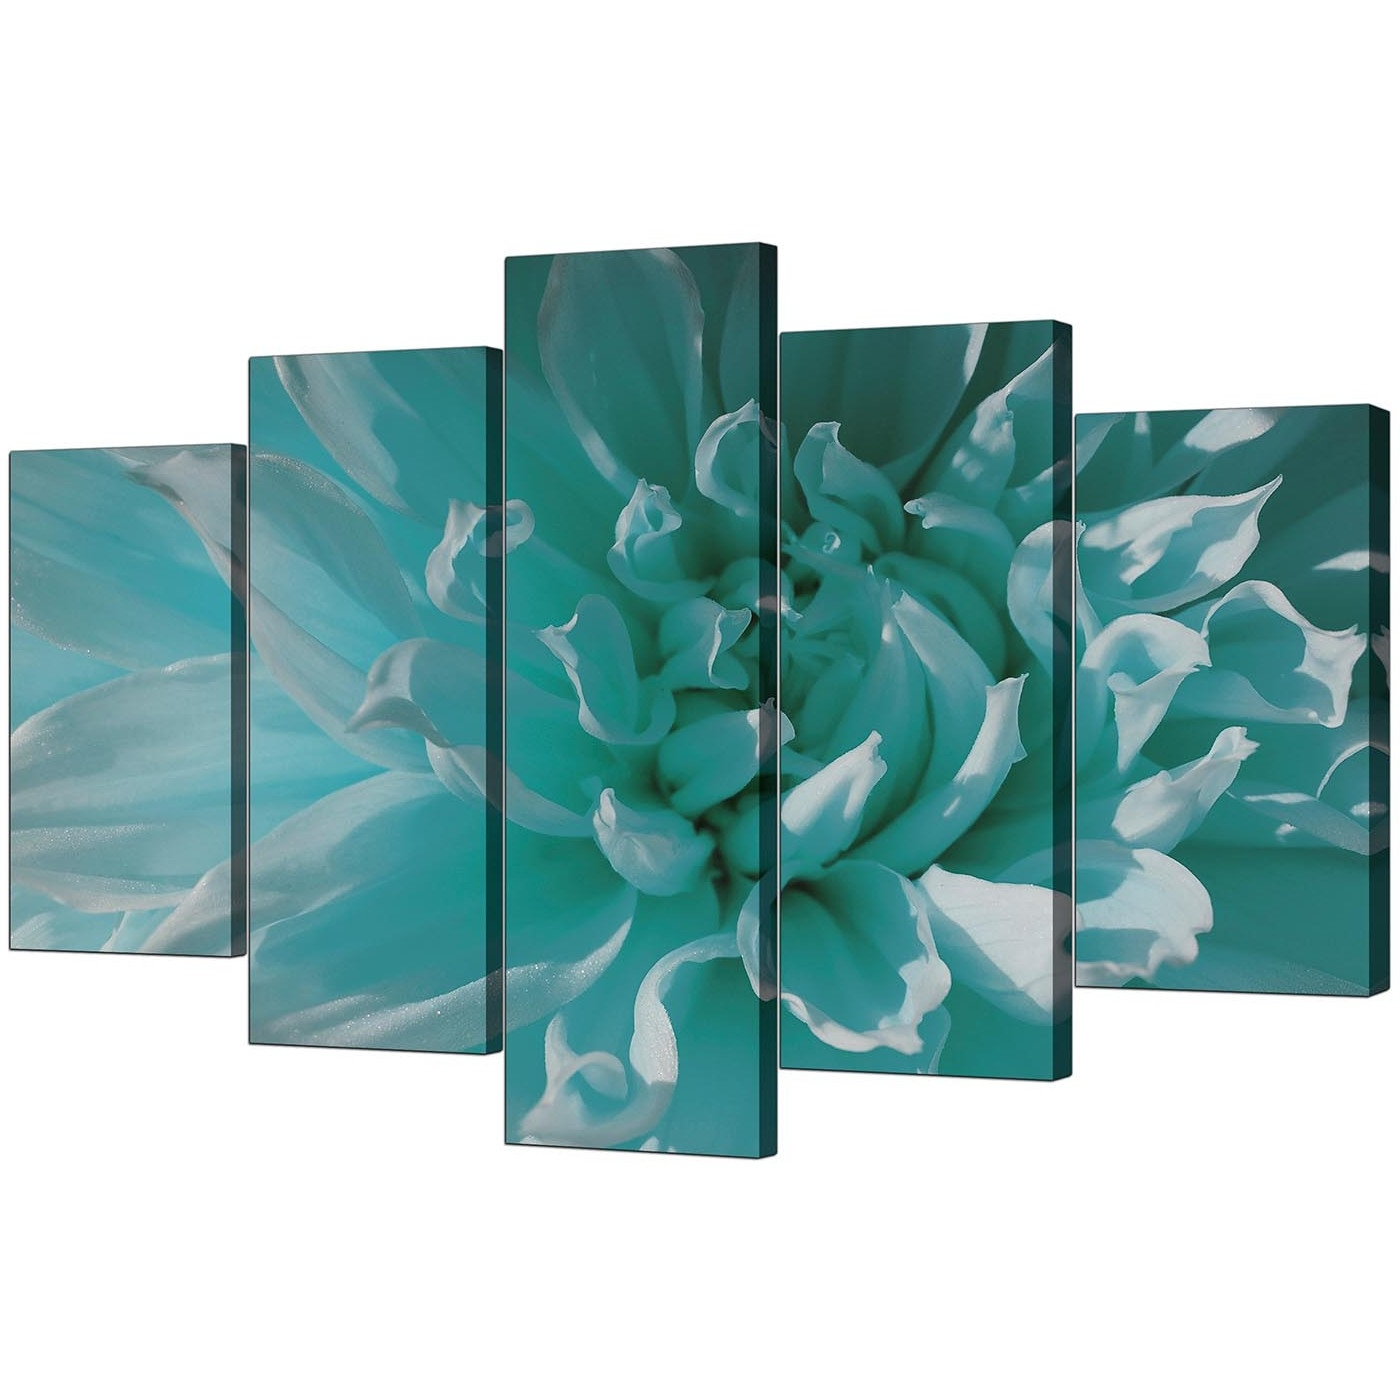 Teal Wall Art In Favorite Extra Large Flower Canvas Wall Art 5 Piece In Teal (View 10 of 15)